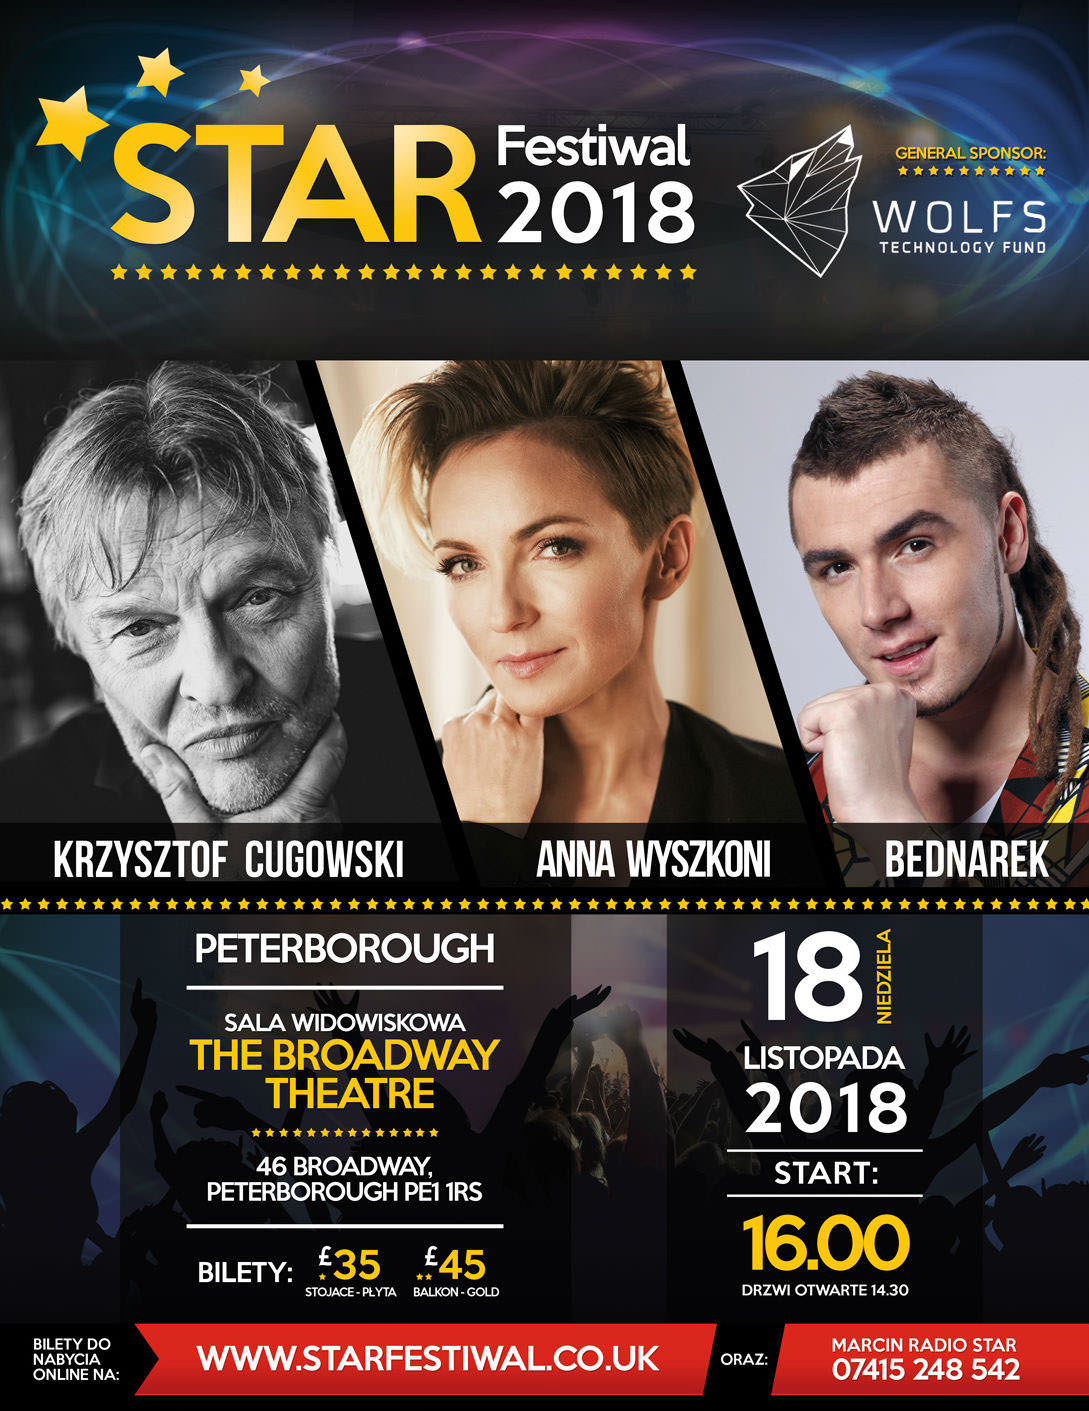 Peterborough Star Festiwal 2018